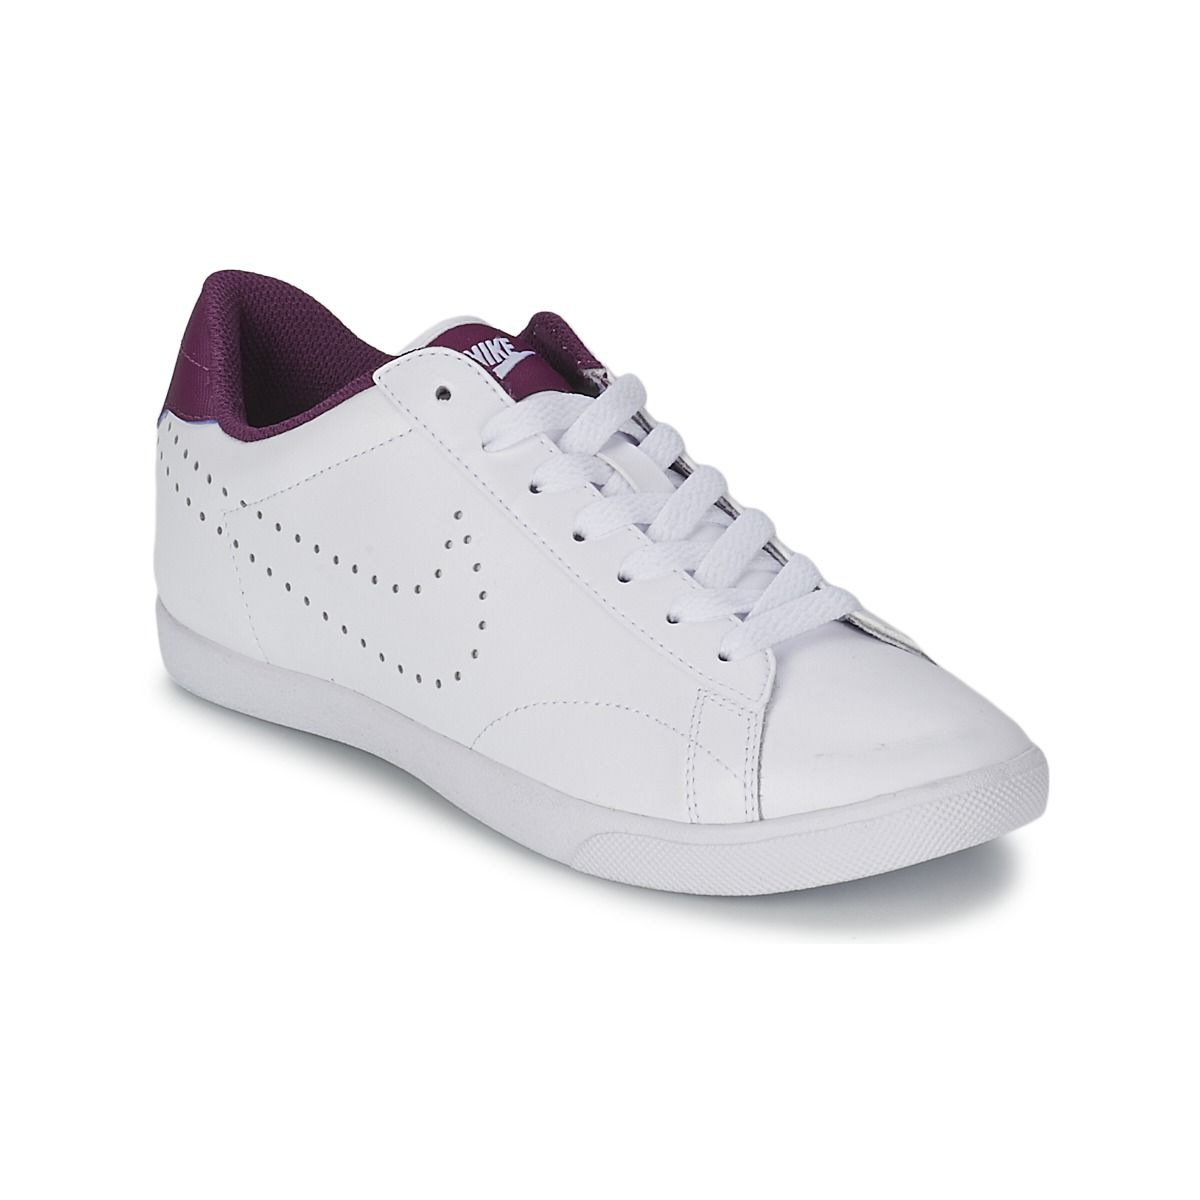 cheap for discount e28a0 480fa Baskets basses Nike RACQUETTE Blanc prix promo Baskets Femme Spartoo 79.99  € Basket Nike, Spartoo